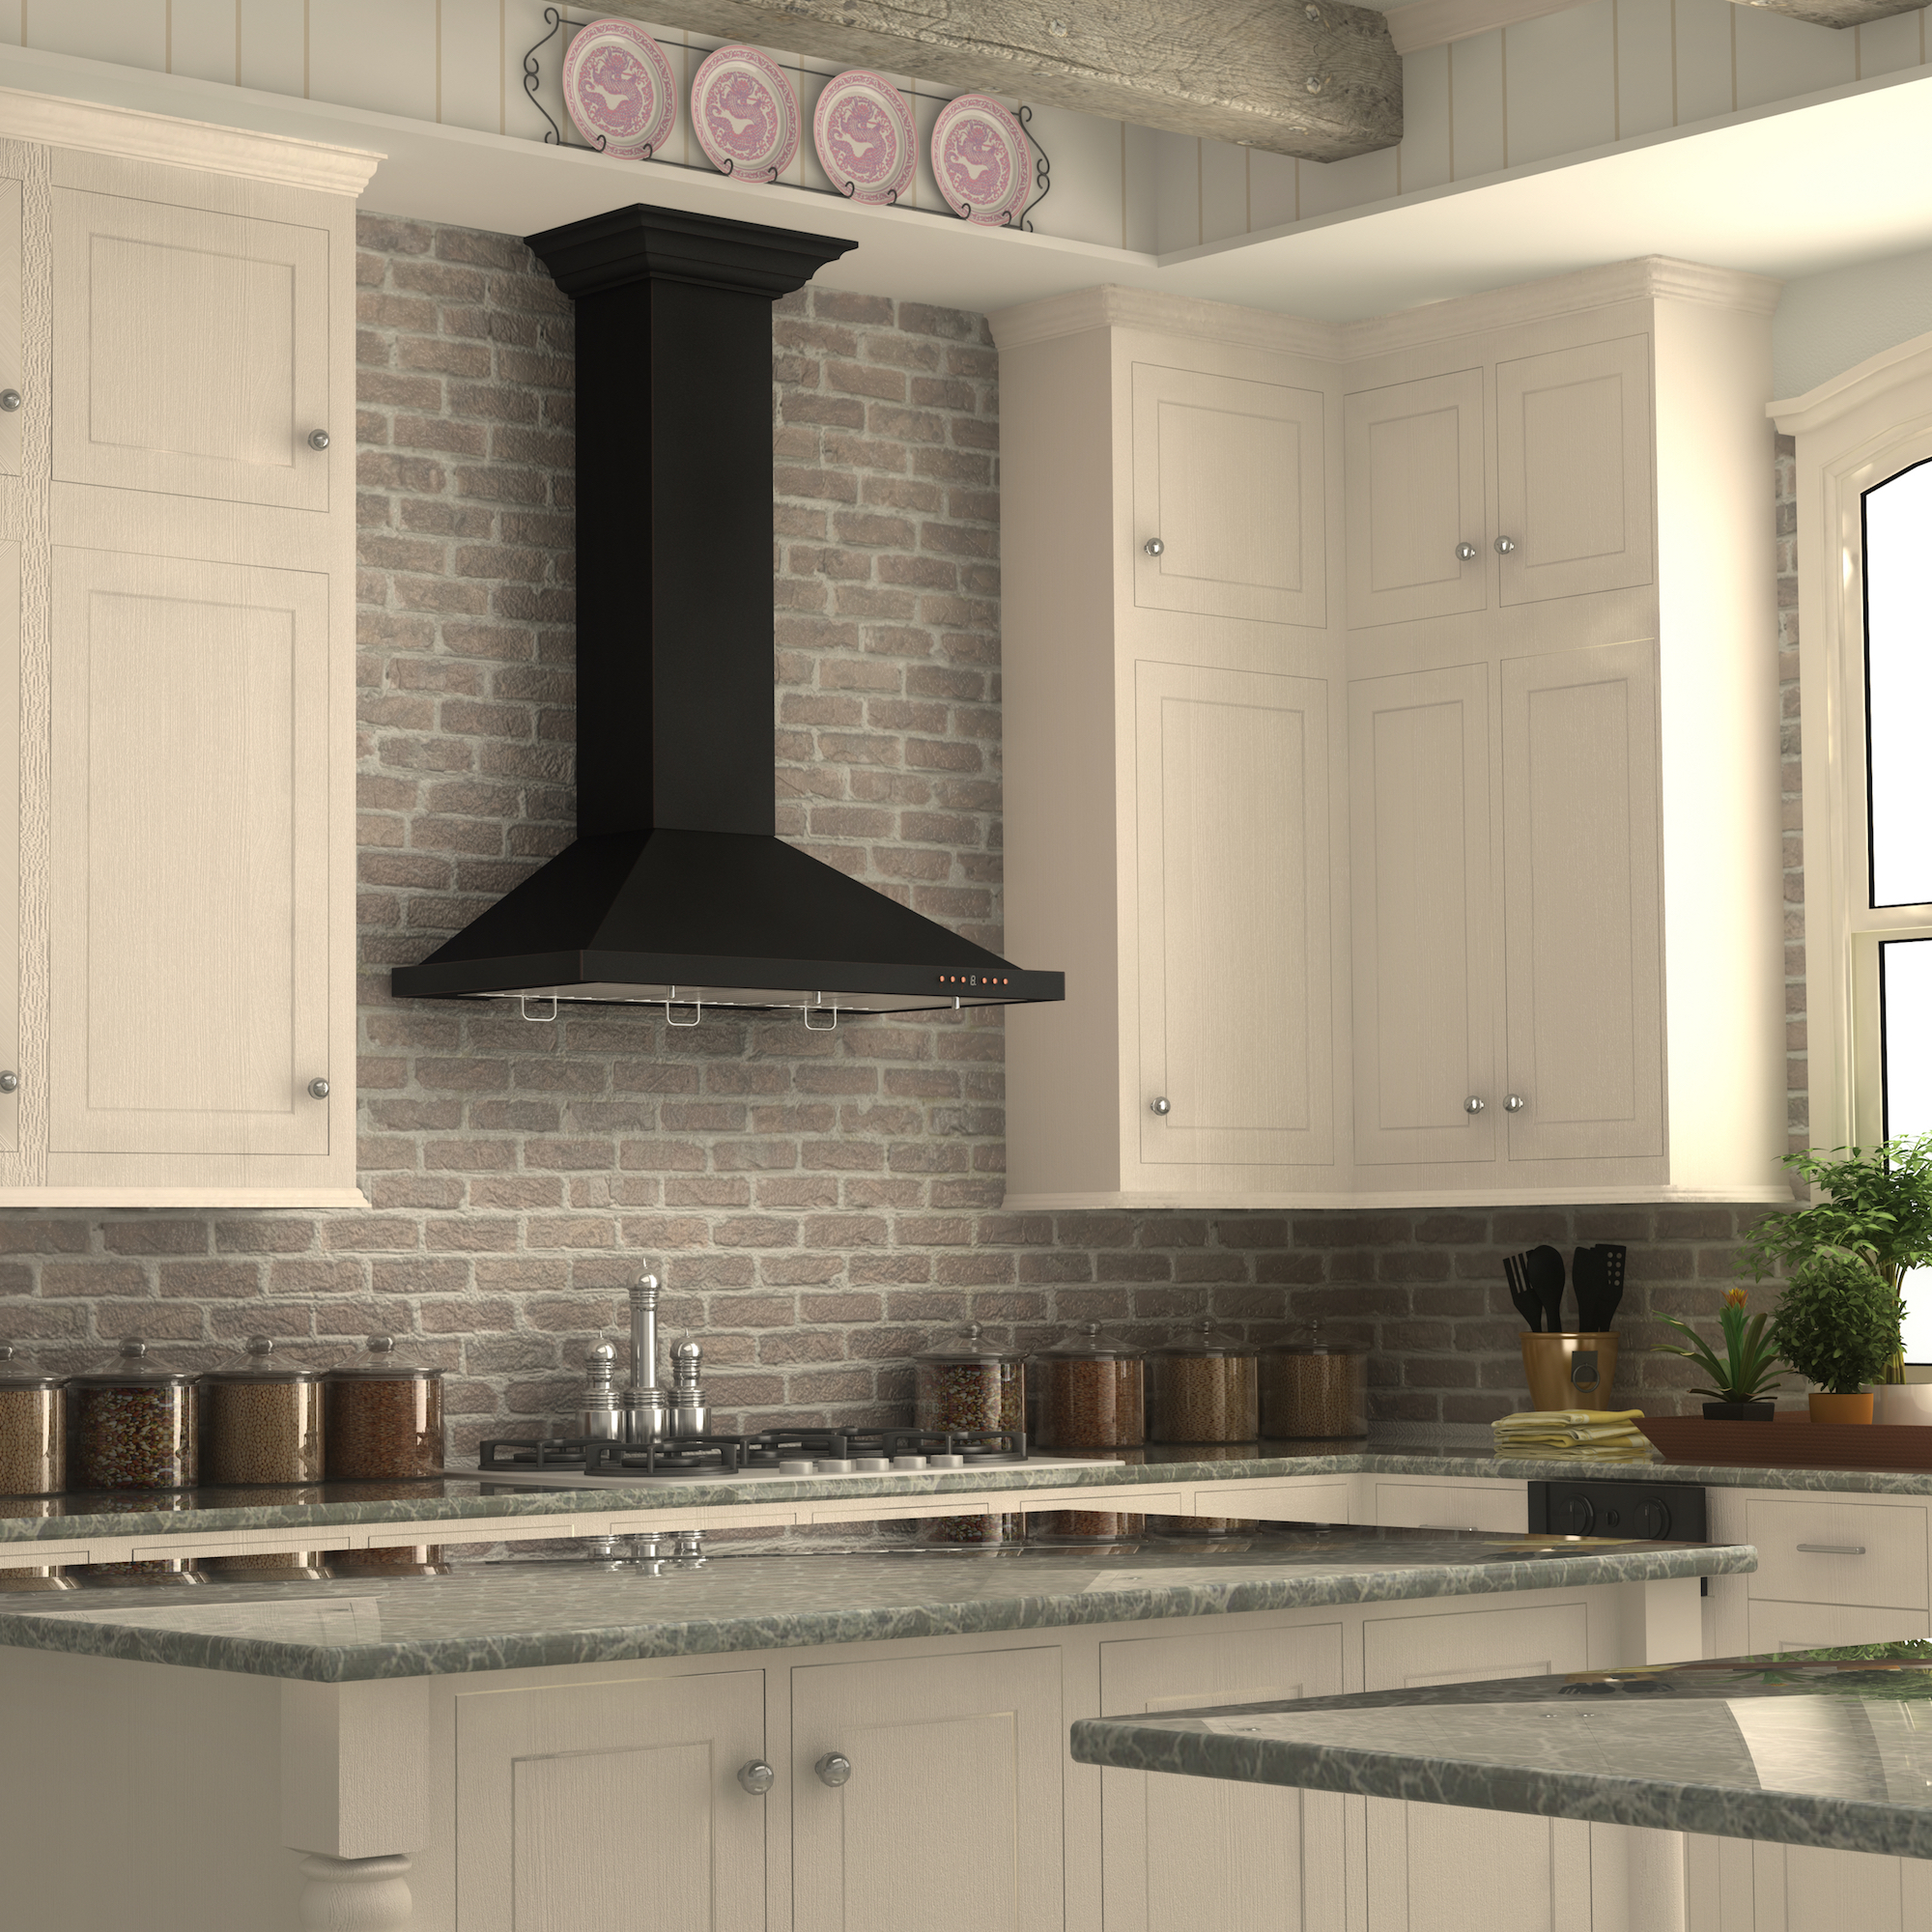 zline-copper-wall-mounted-range-hood-8KBB-kitchen 2.jpg